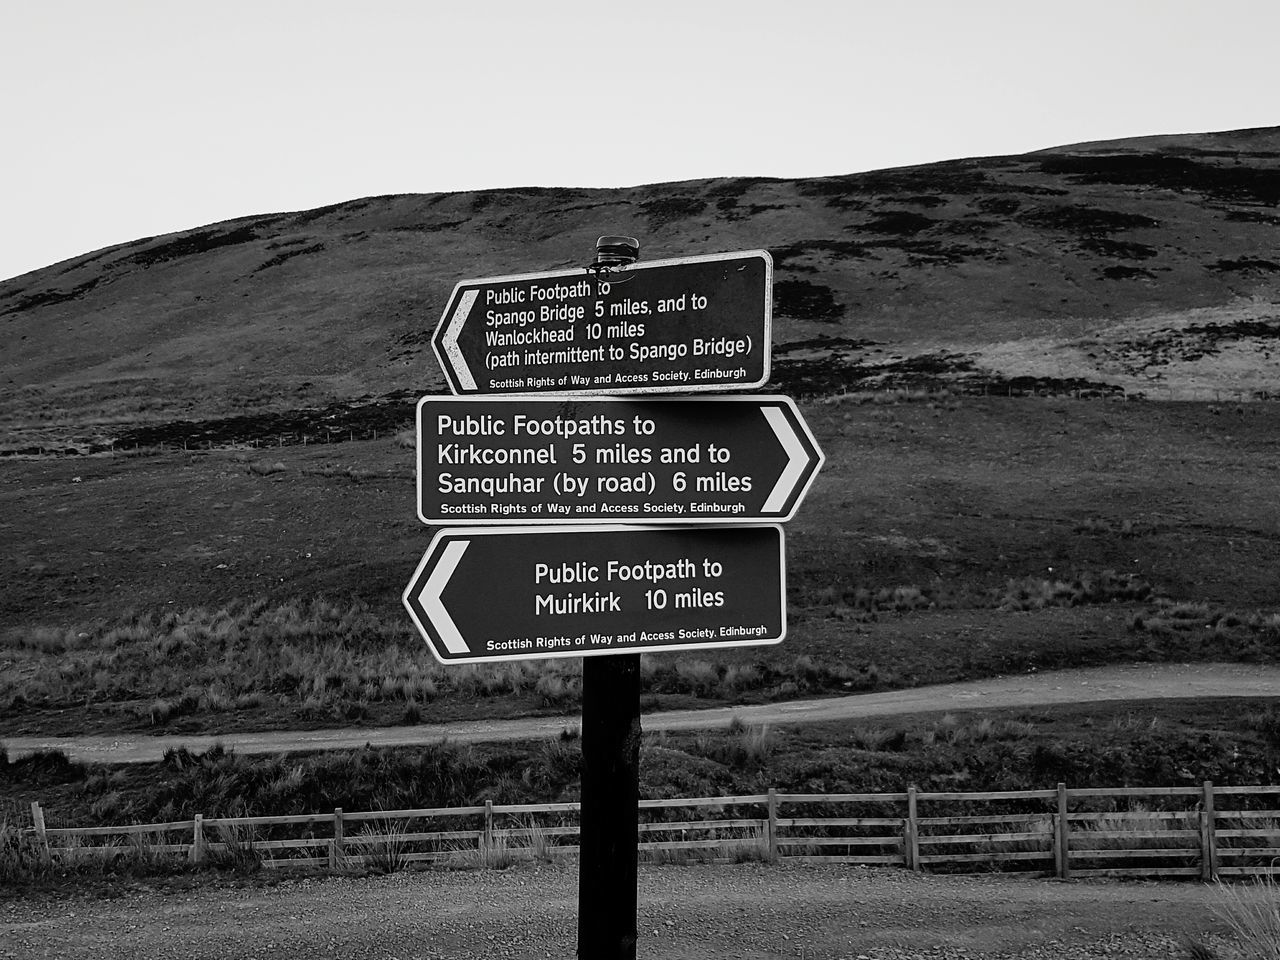 Taking Photos Monochrome _ Collection Blackandwhite Photography Taking Pictures Monochromatic Black And White Photography Beautiful View Sign Post Signs Signporn Which Way To Go? Which Way? Crossrail Crossroads Of The World Cross Roads Crossroadslife Hills And Valleys Hillscape Hikingadventures Hiking Trail Scotland Dumfries Sightseeing, Hiking_walking Dayoff Day Out